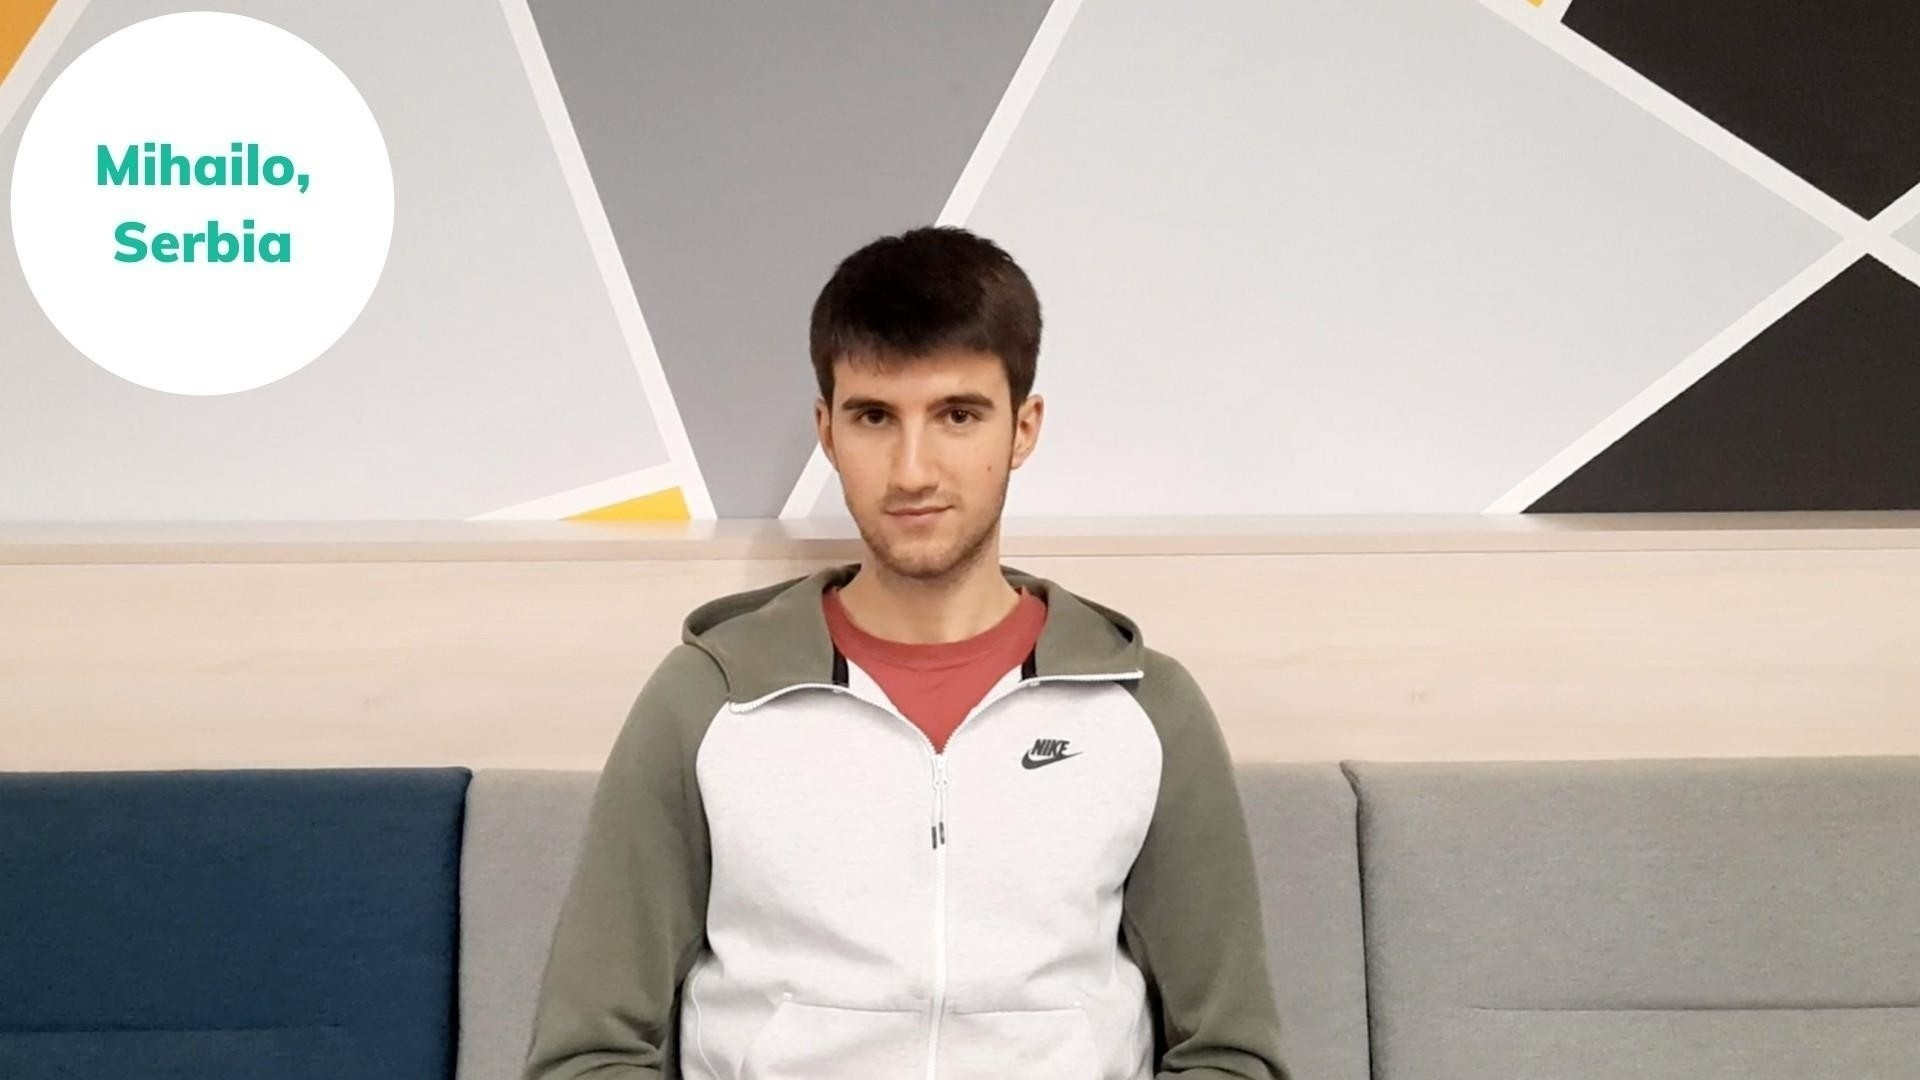 Mihailo from Serbia shares his success story after joining the English-Everyday speaking course